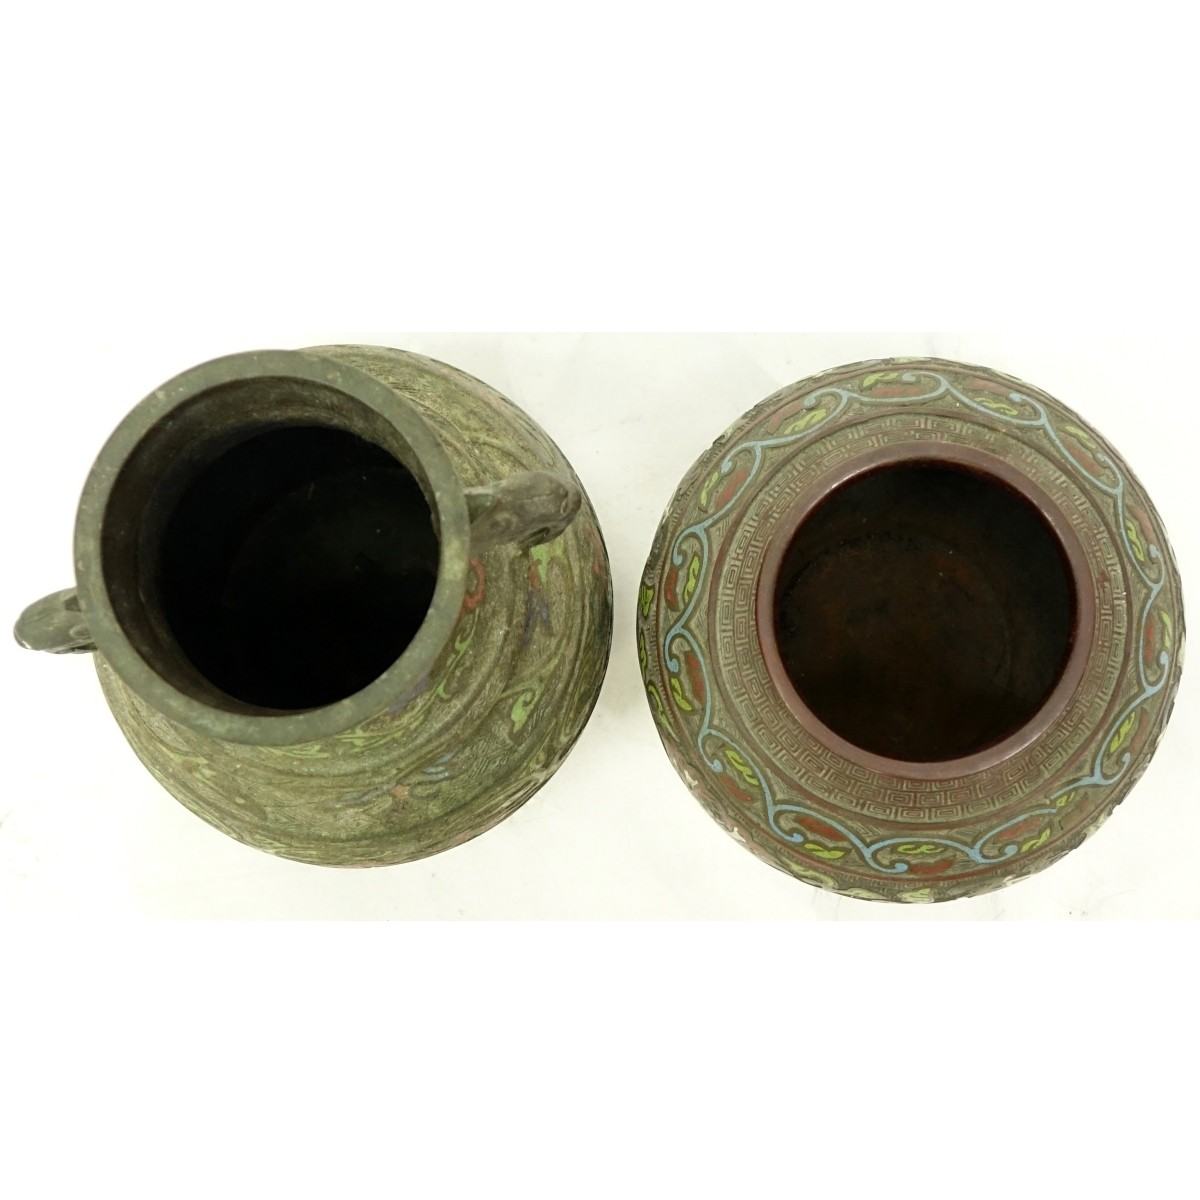 Two (2) Antique Japanese bronze Champleve Vases